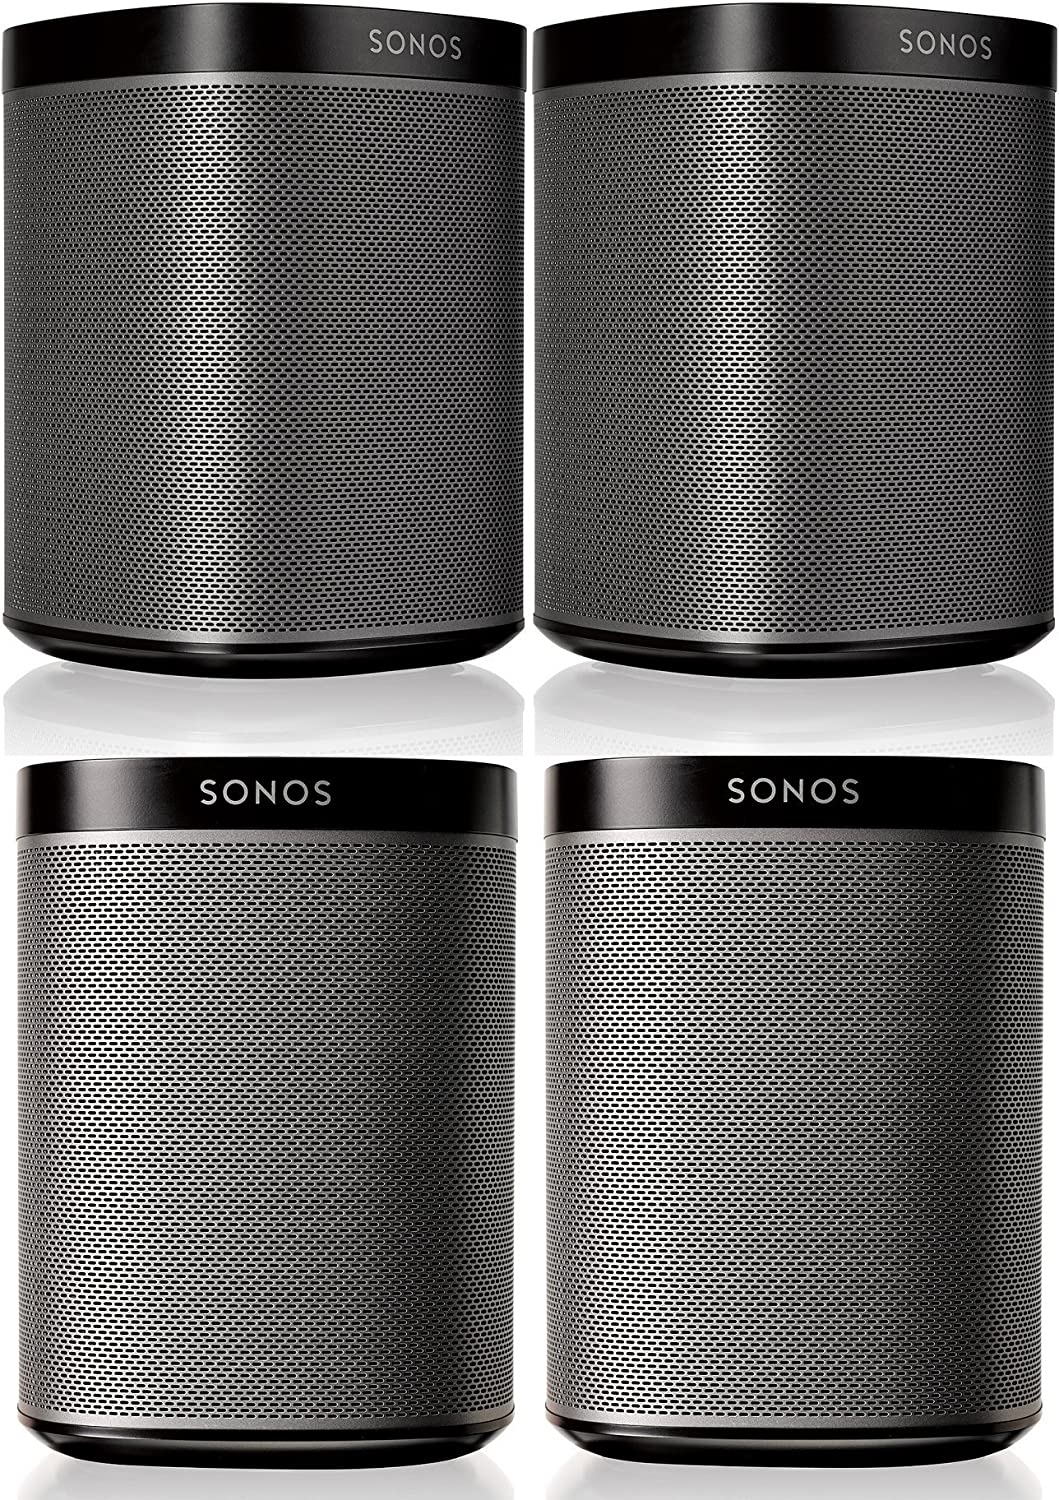 Sonos Play:1 Multi-Room Digital Music System Bundle (4 - Play:1 Speakers) - Black